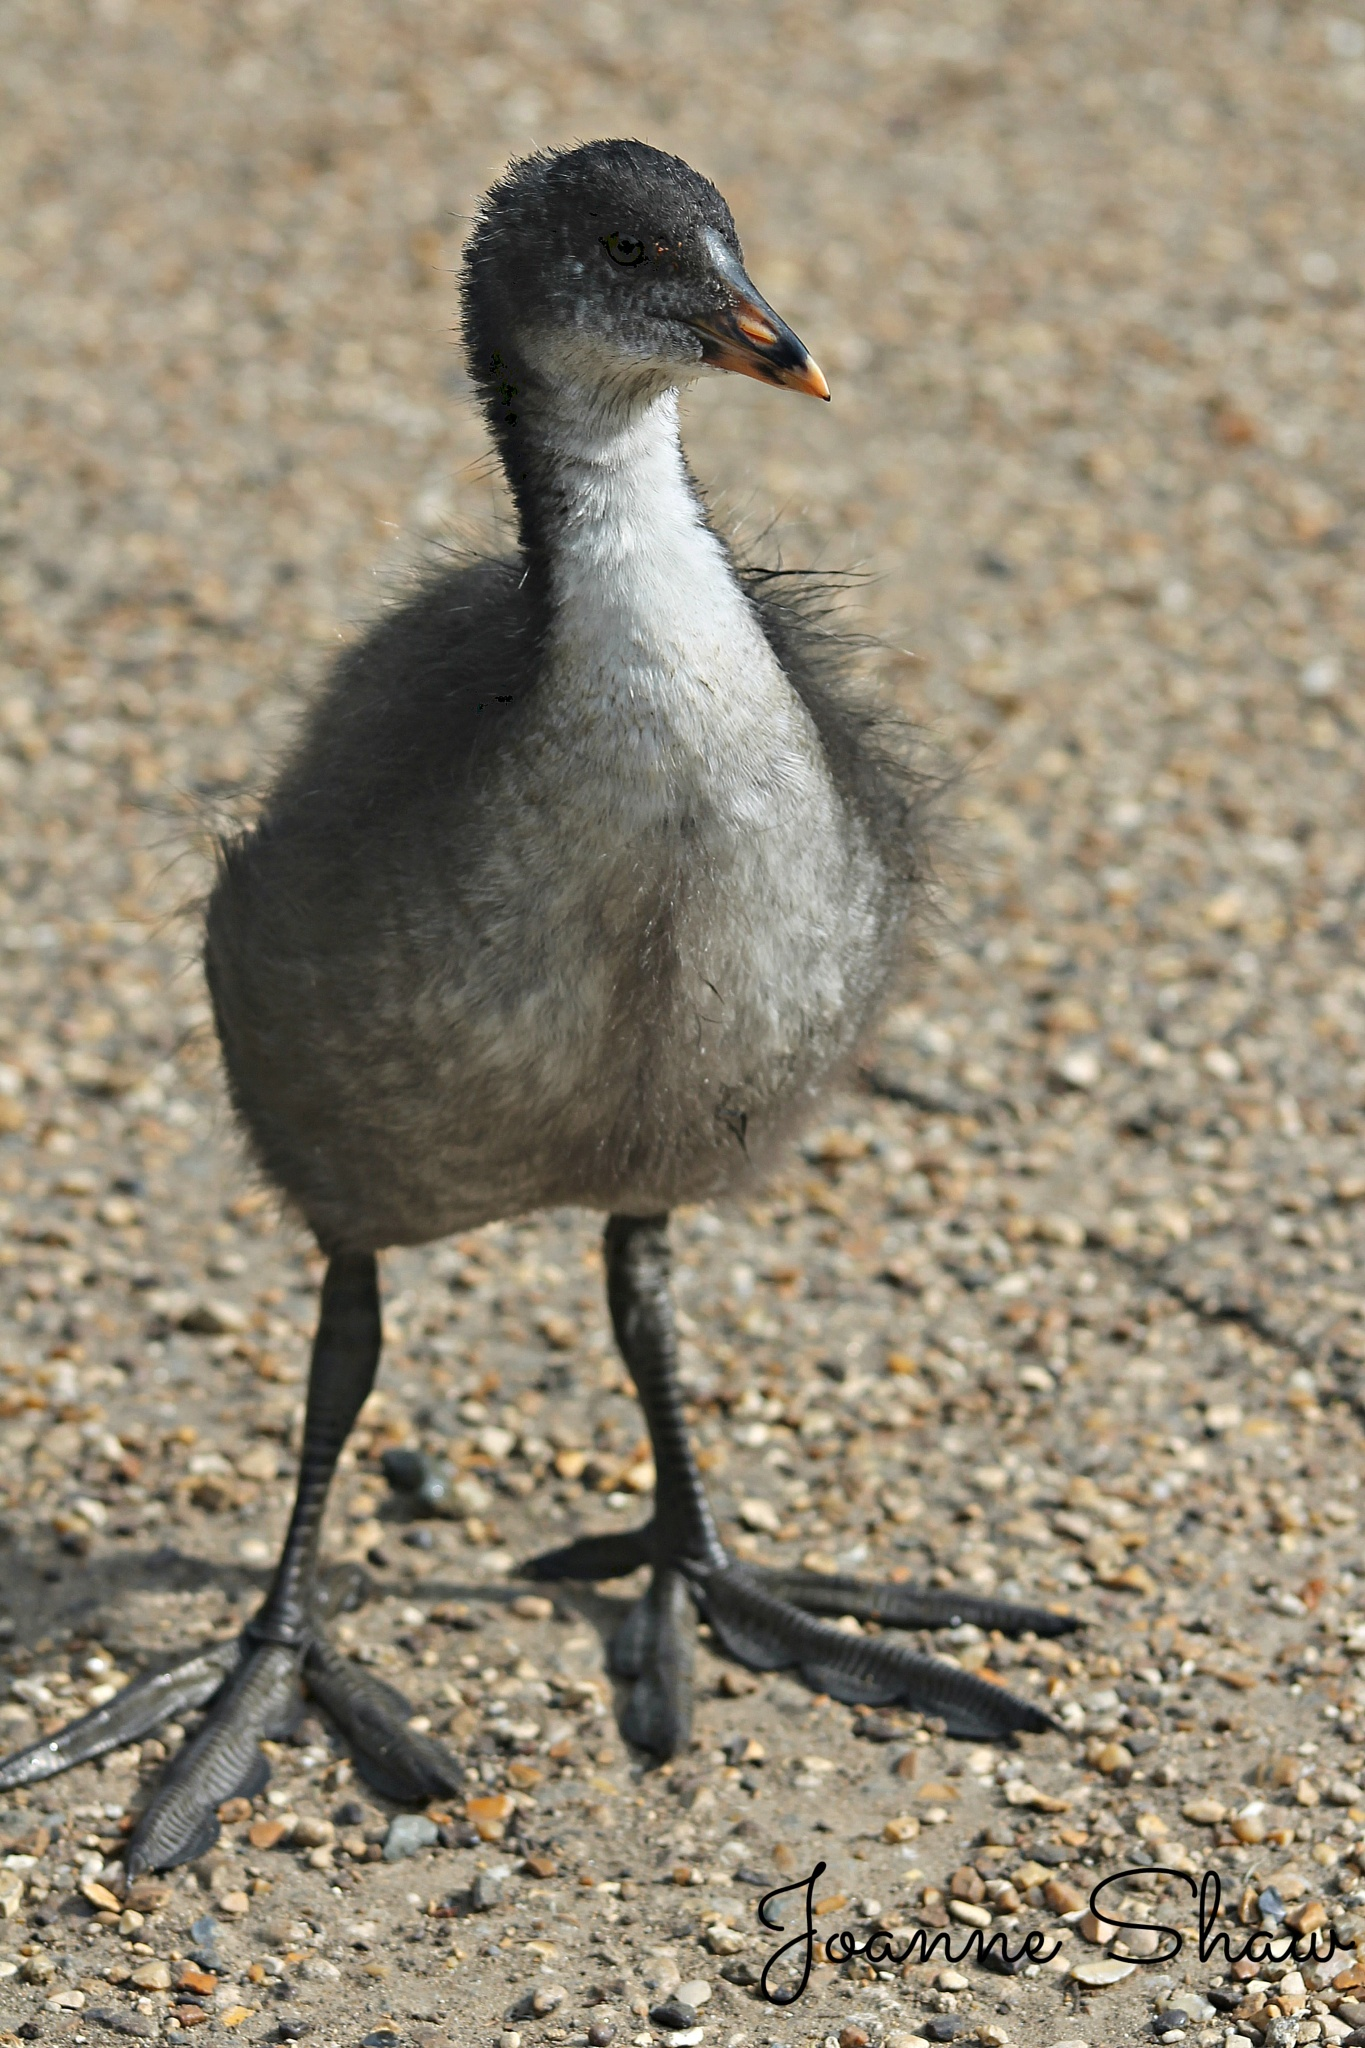 Coot Juvenile by Joanne Laws